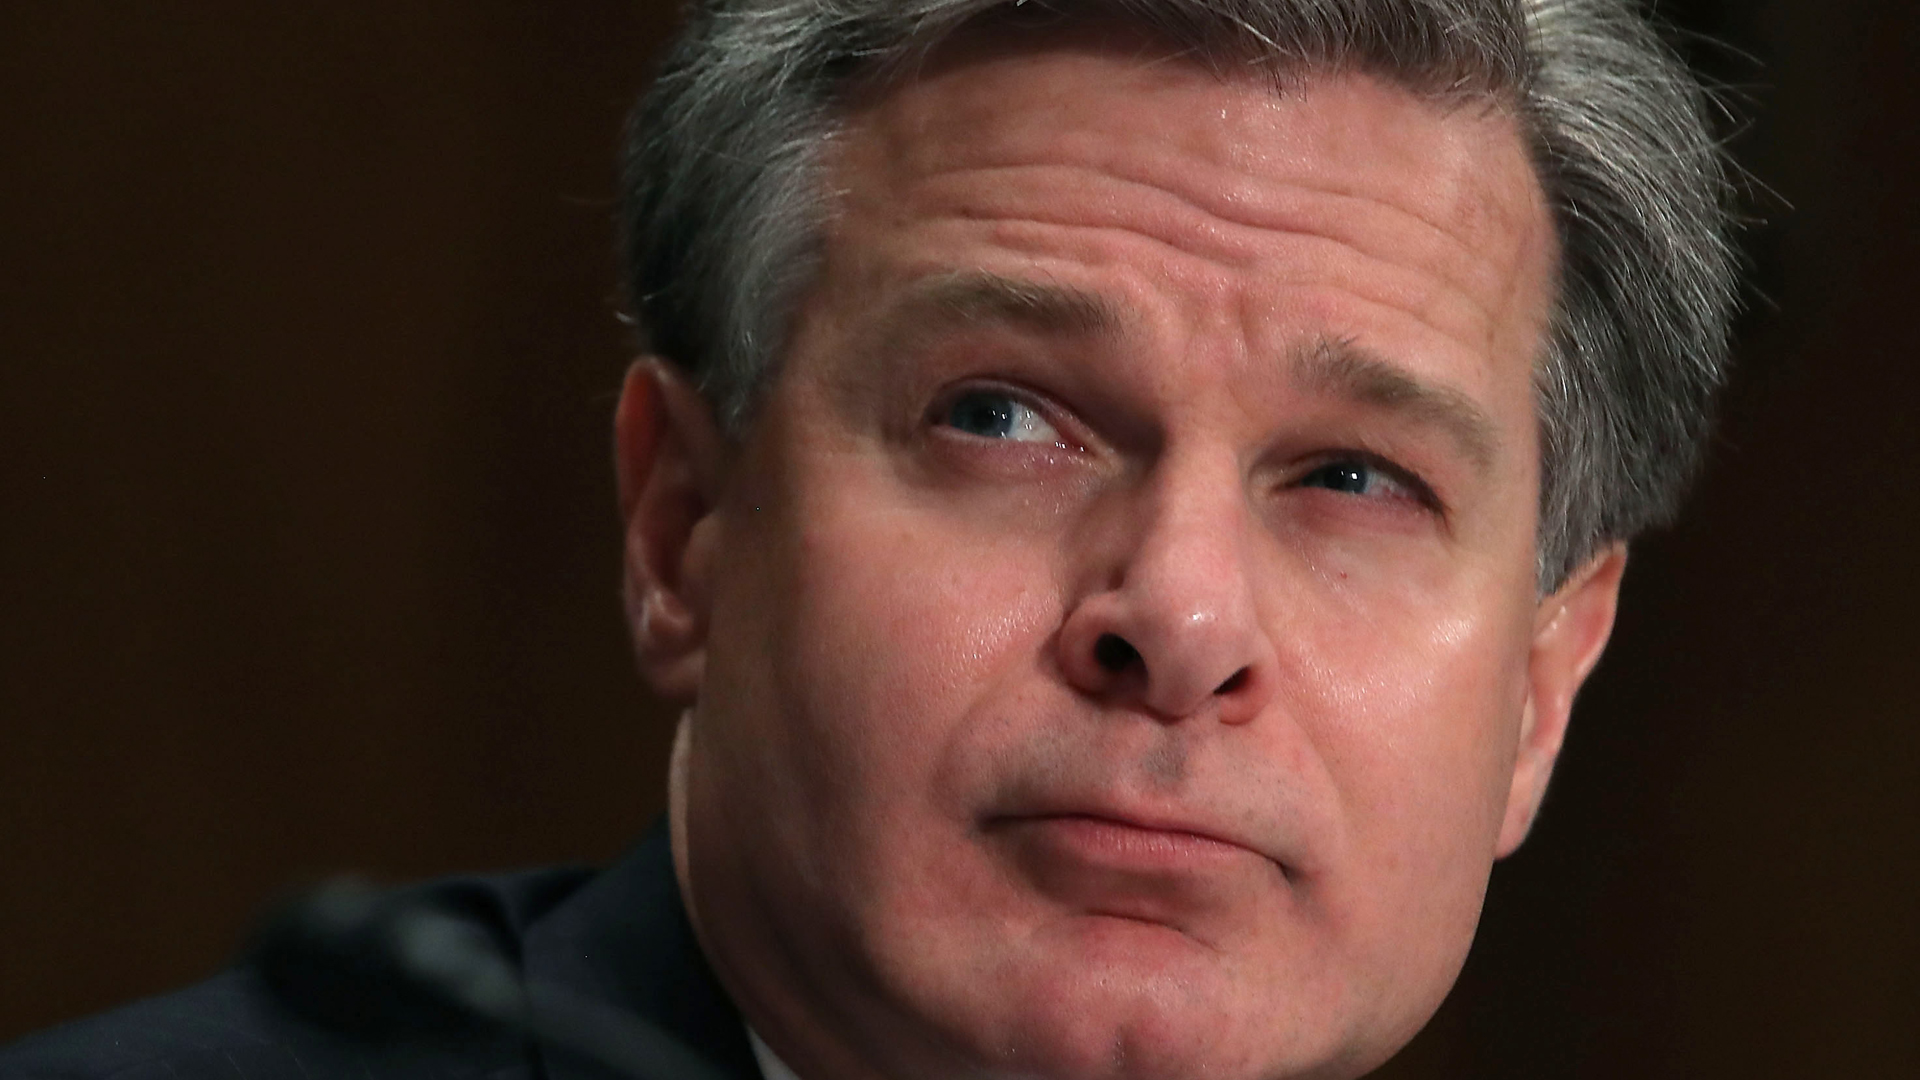 FBI Director Christopher A. Wray listens to comments during a Senate Homeland Security and Governmental Affairs Committee hearing on Capitol Hill, on Oct. 10, 2018. (Credit: Mark Wilson/Getty Images)